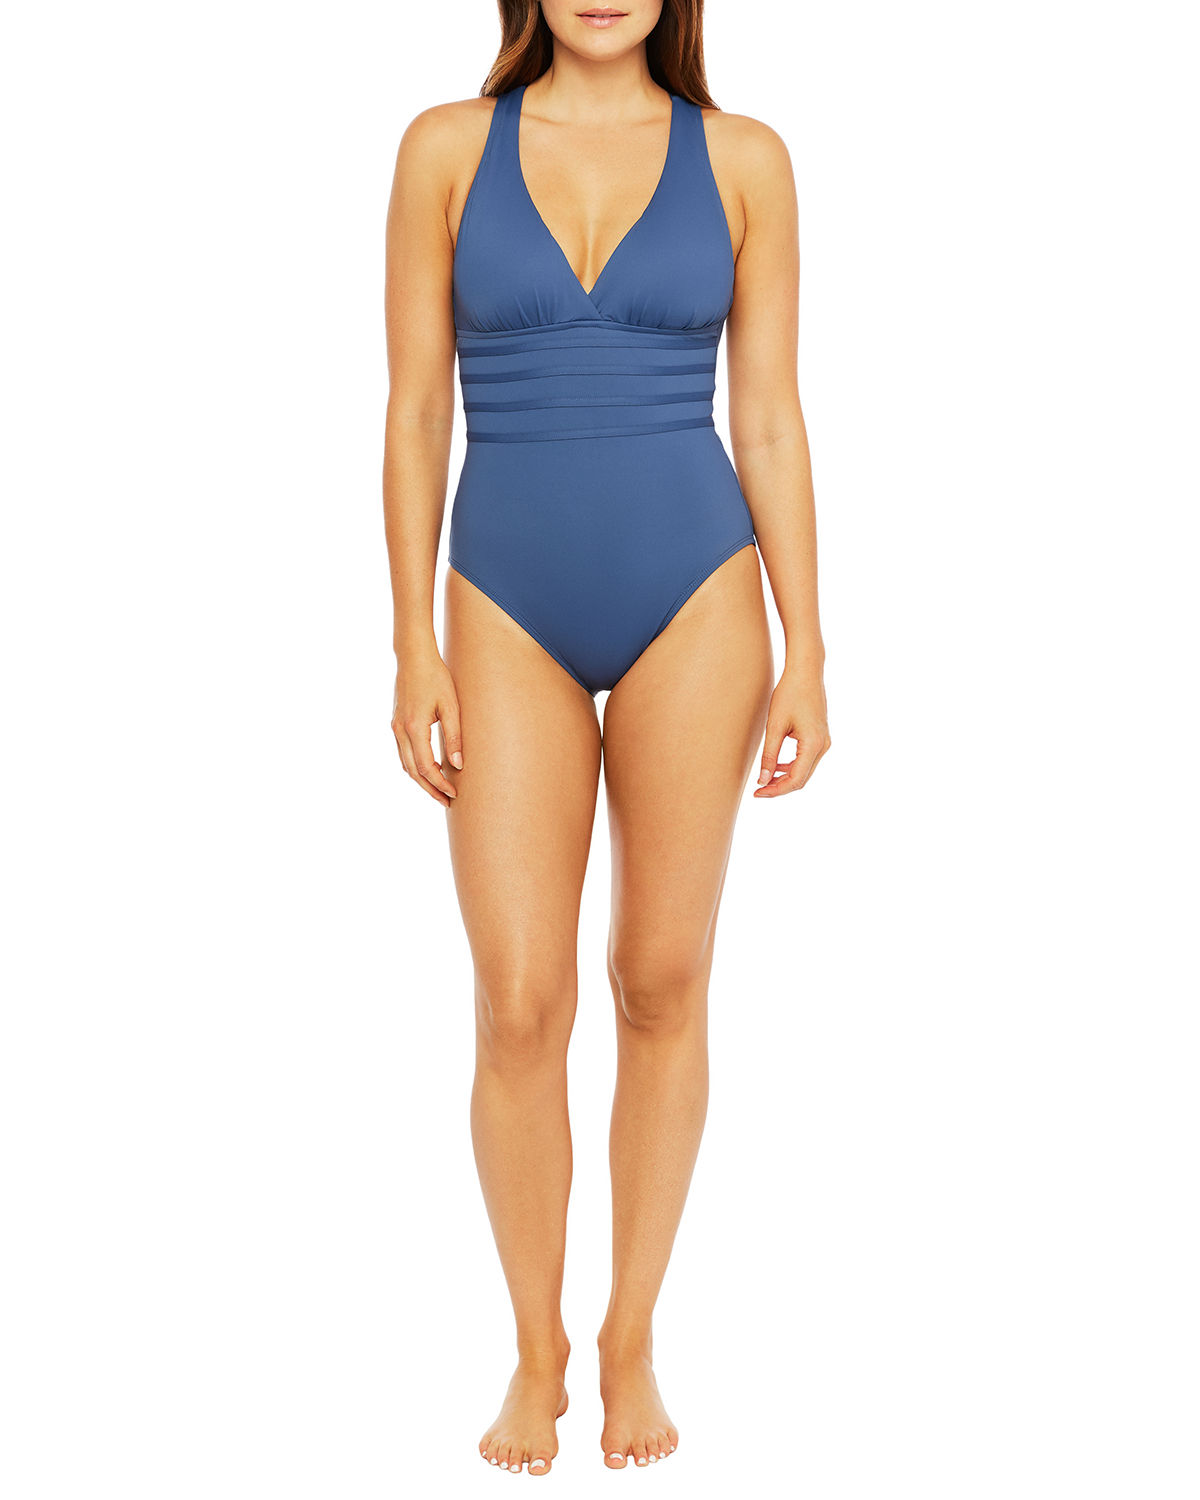 La Blanca Suits Island Goddess Strappy-Back One-Piece Swimsuit